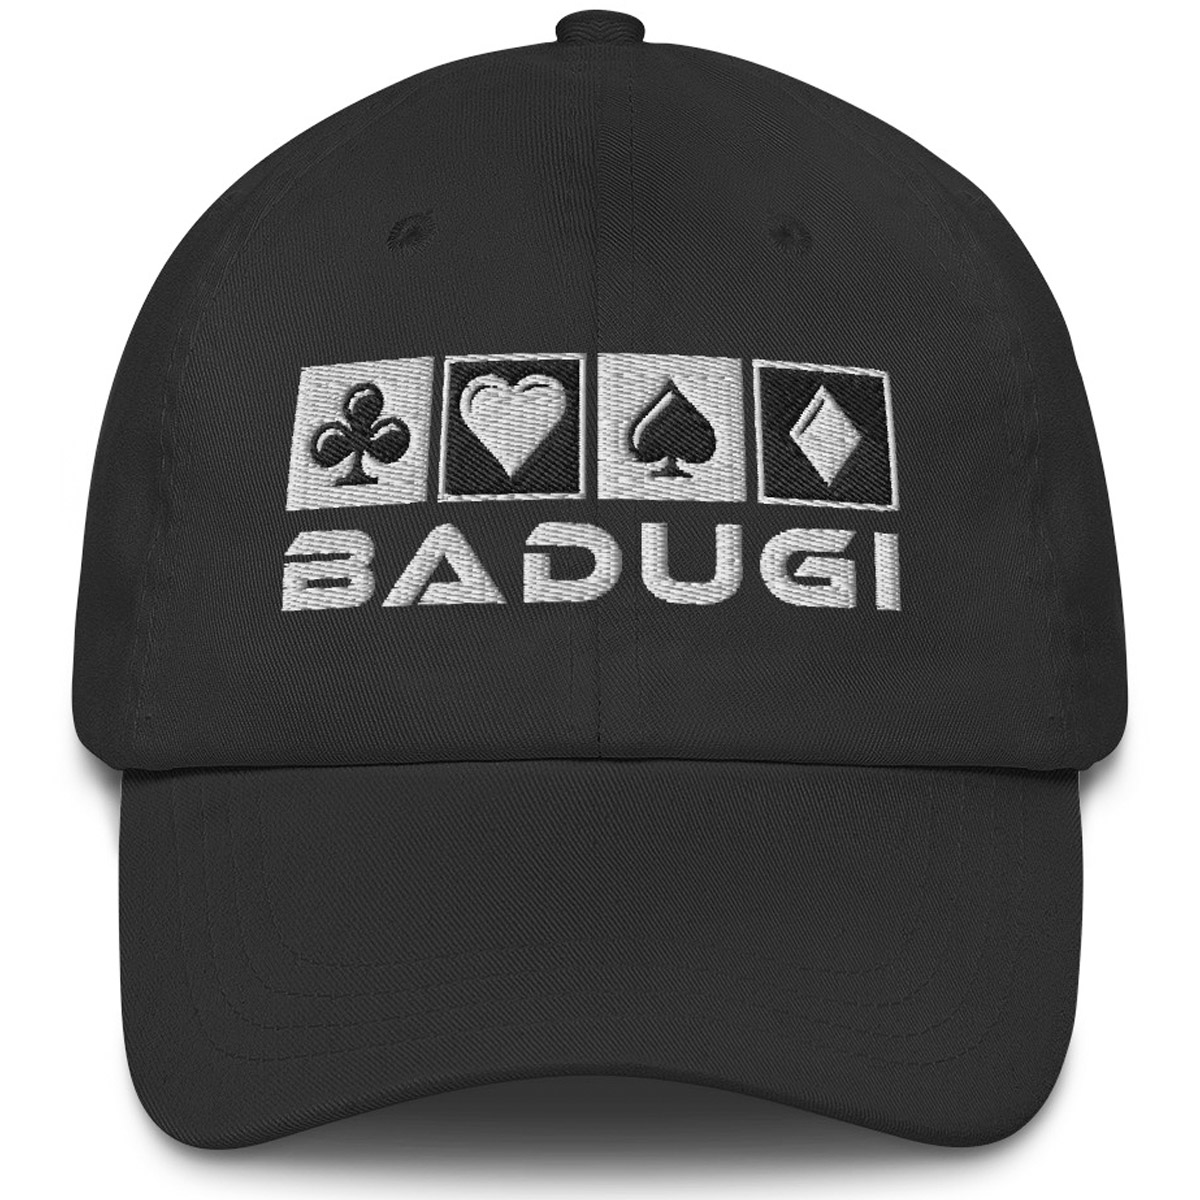 Badugi Dad Hat Black